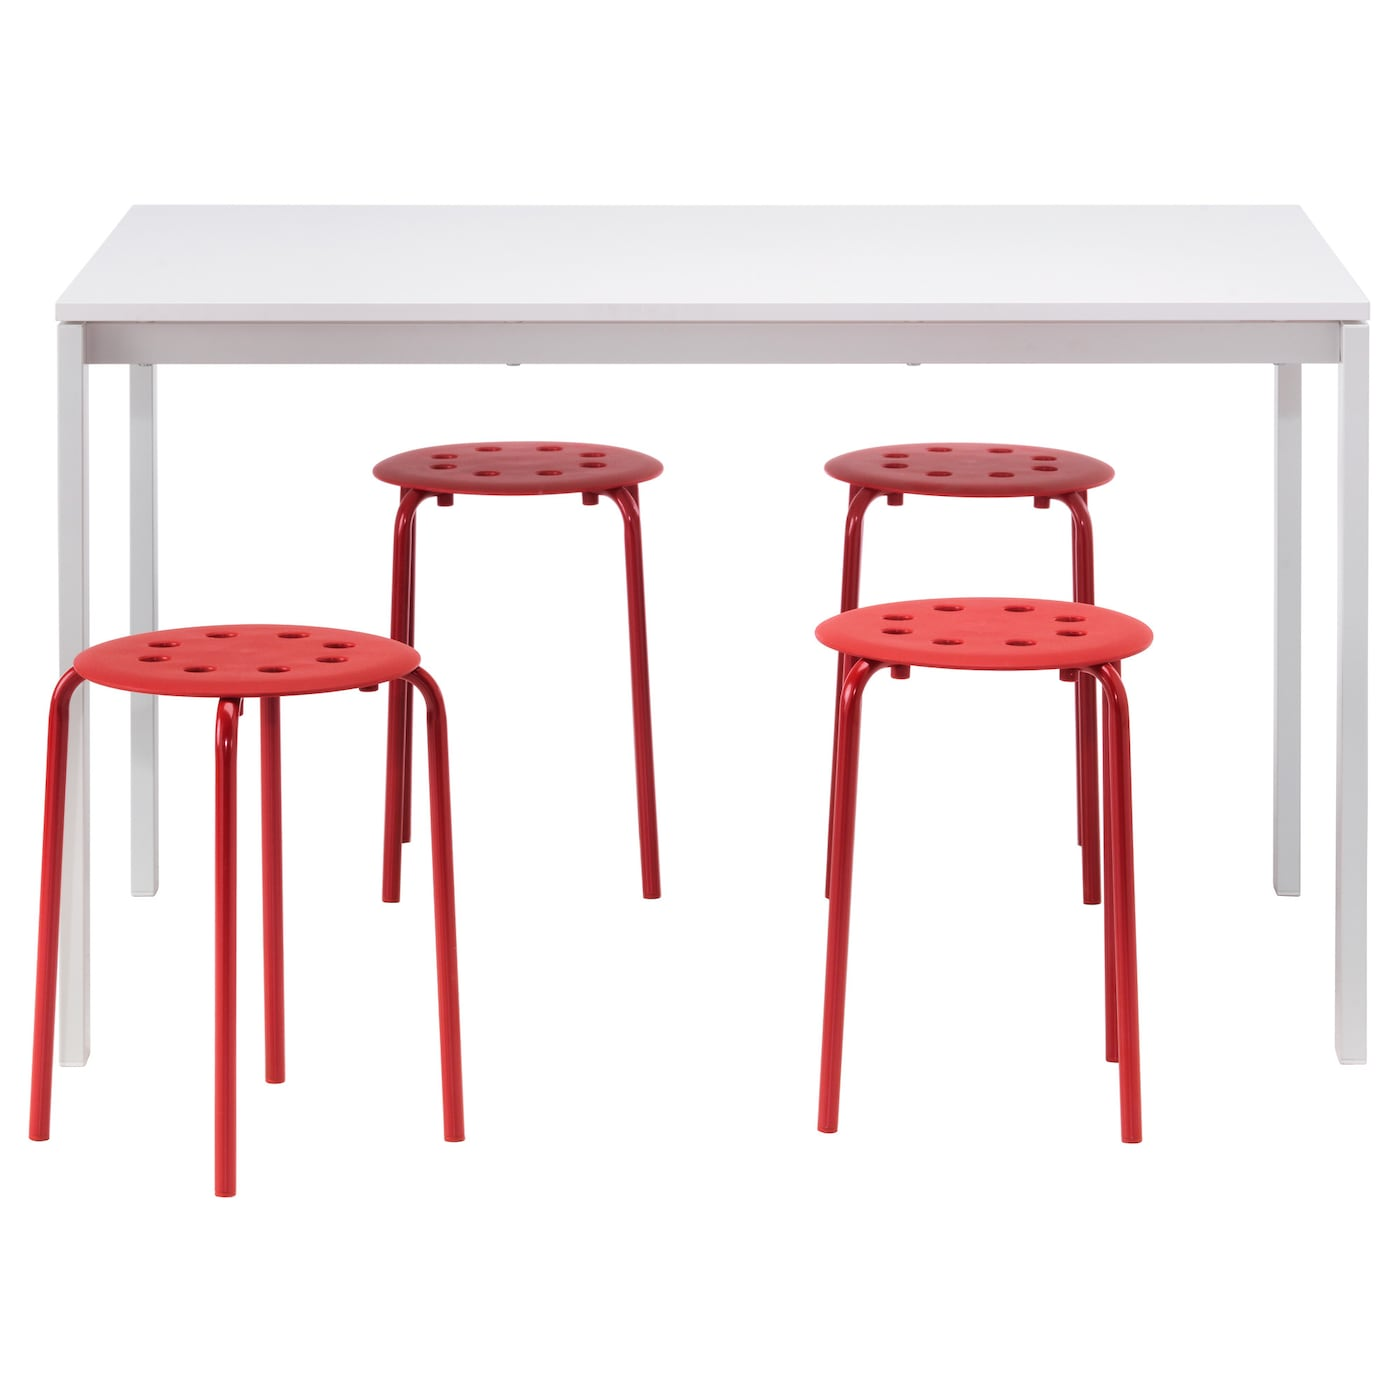 IKEA MELLTORP/MARIUS table and 4 stools